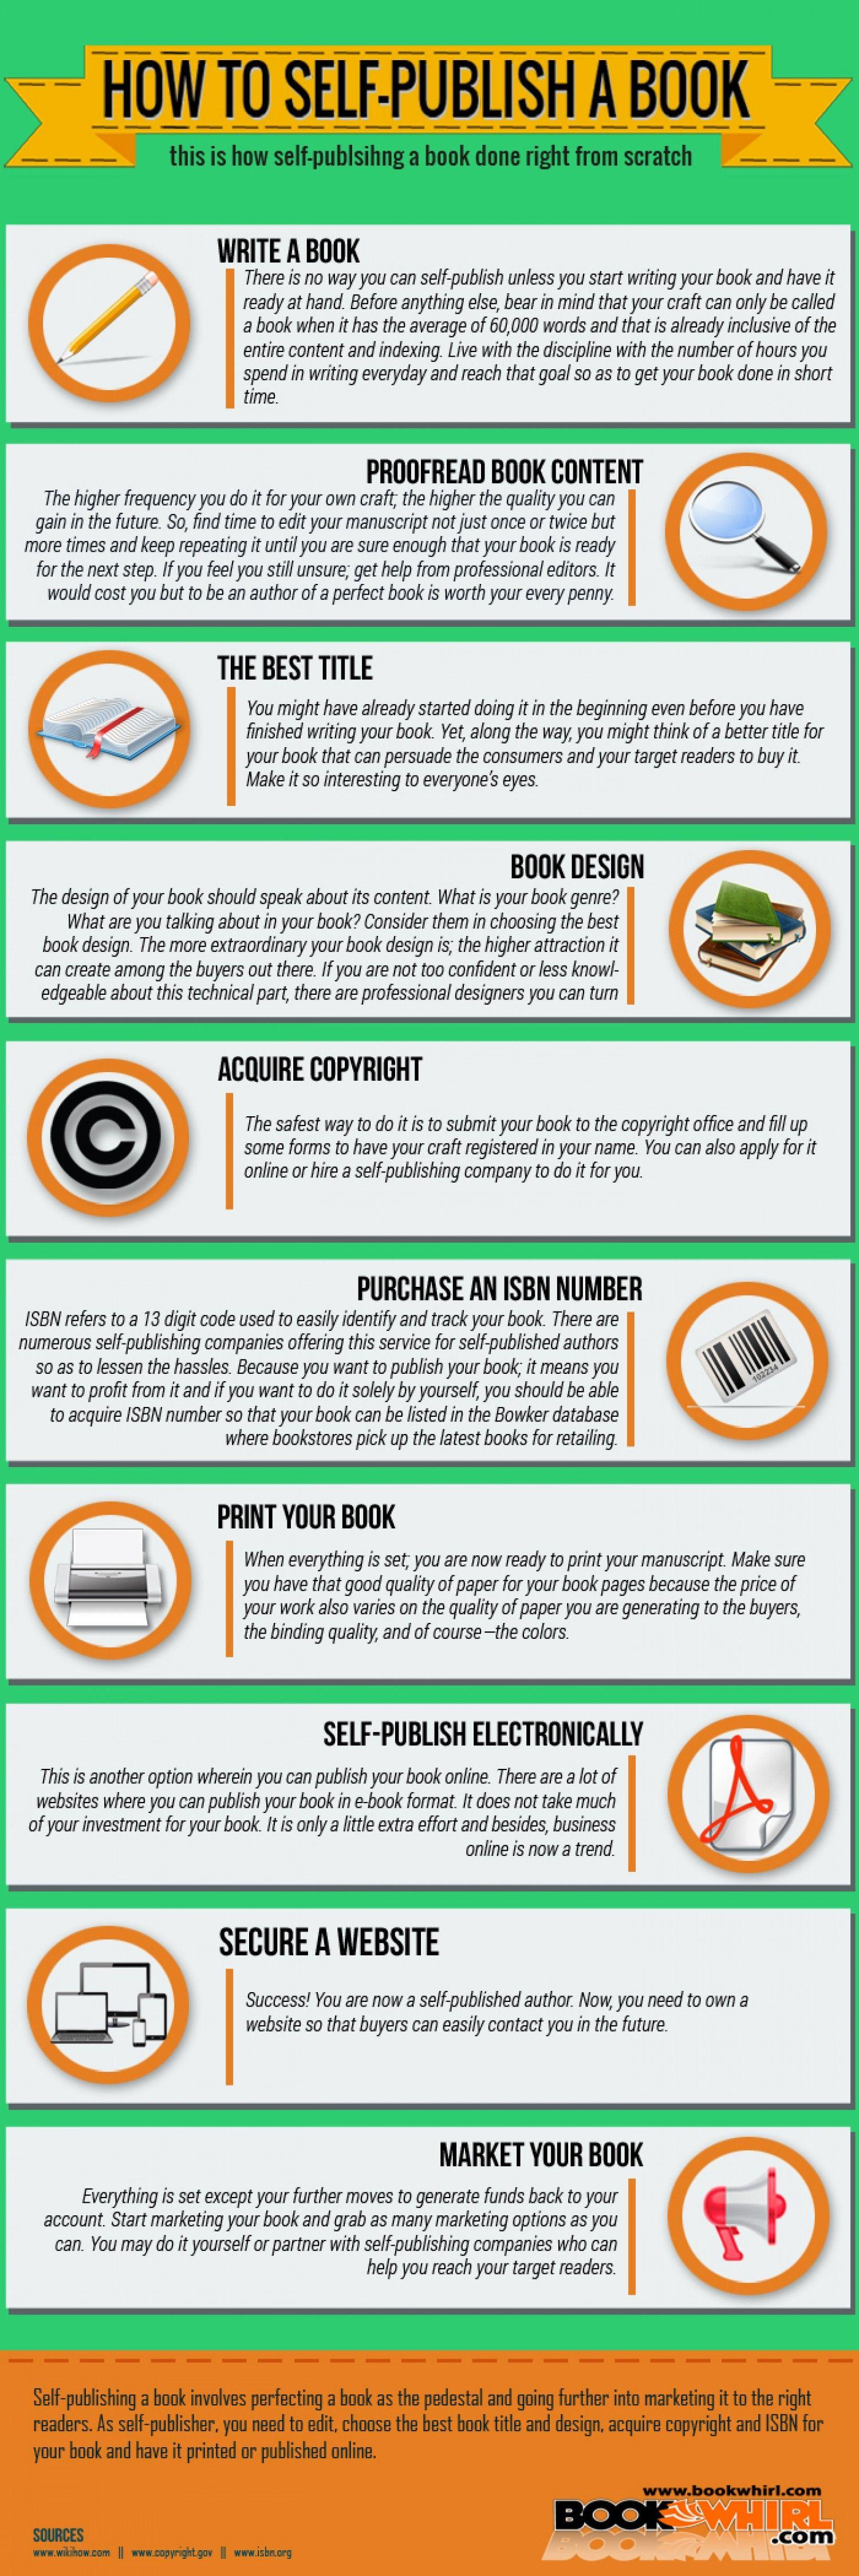 How To Self Publish A Book Infographic